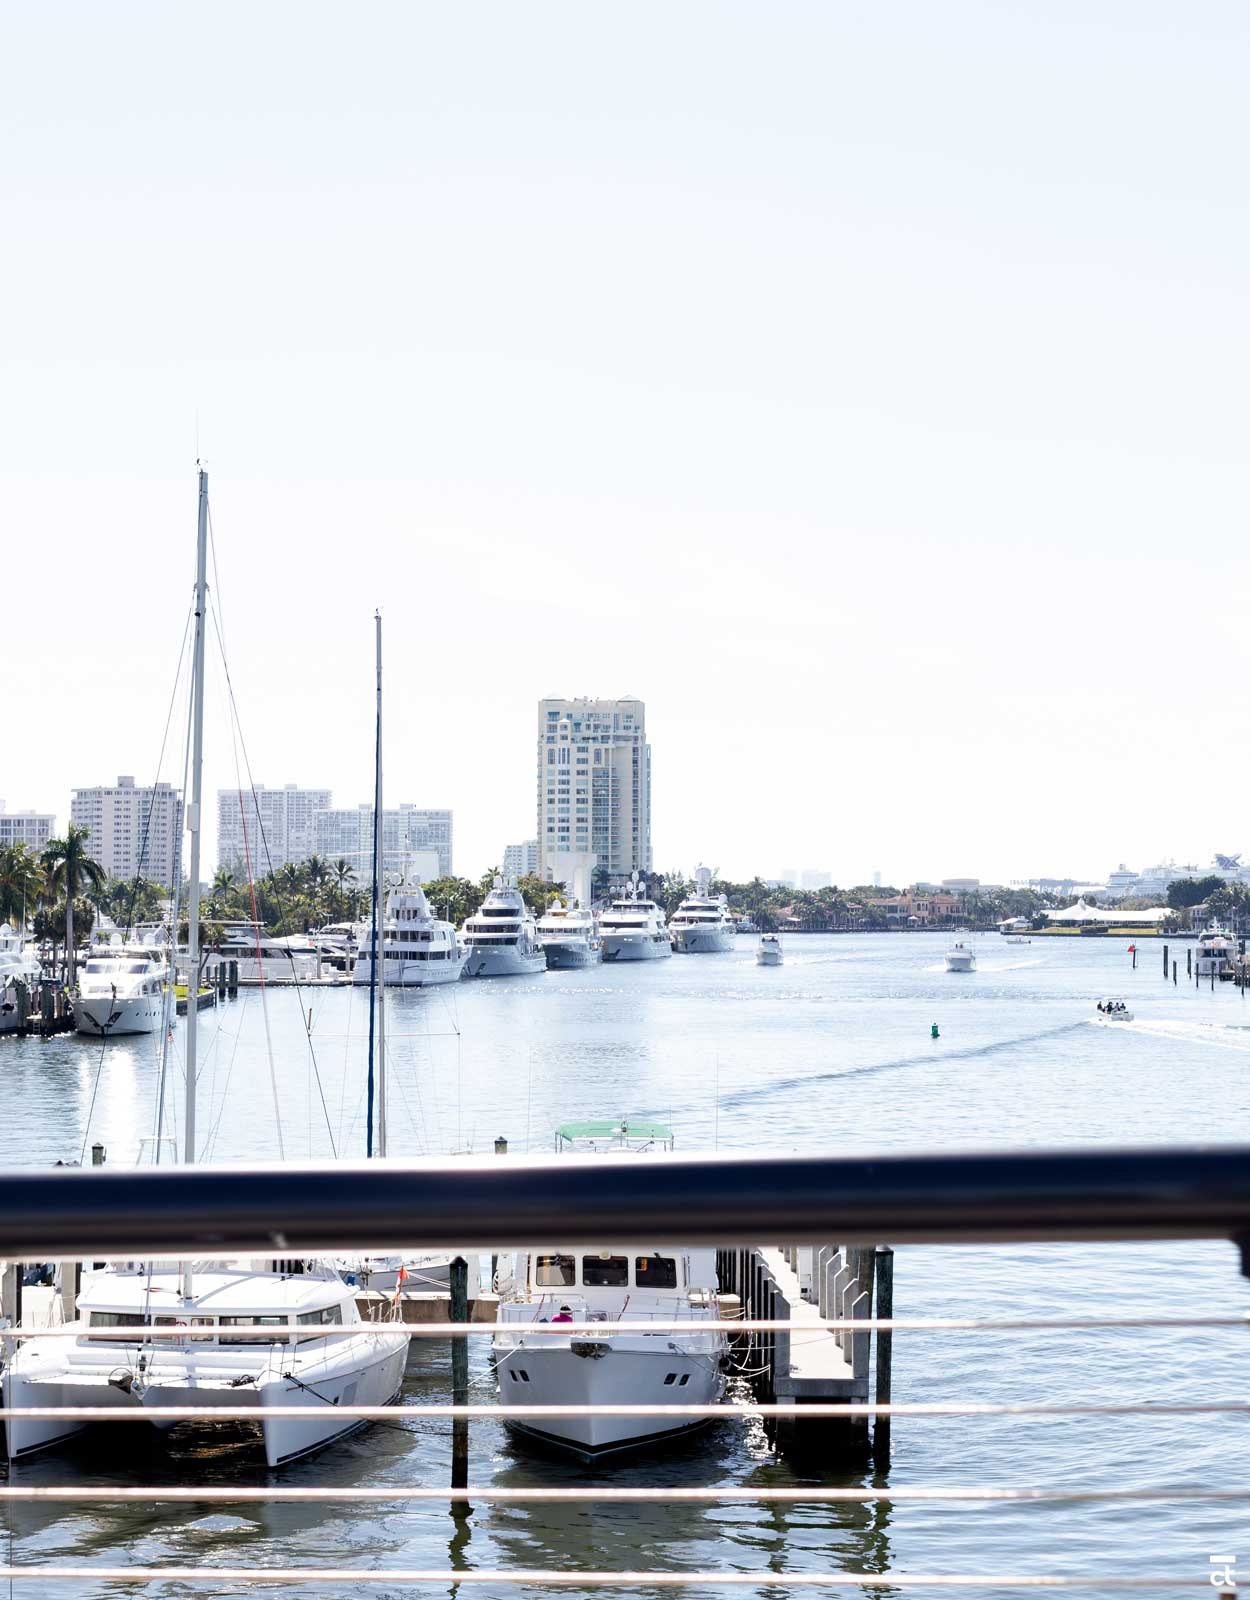 Fort Lauderdale Travel Guide: 25 Things to Do in Fort Lauderdale, Florida - CHRISTOBEL TRAVEL